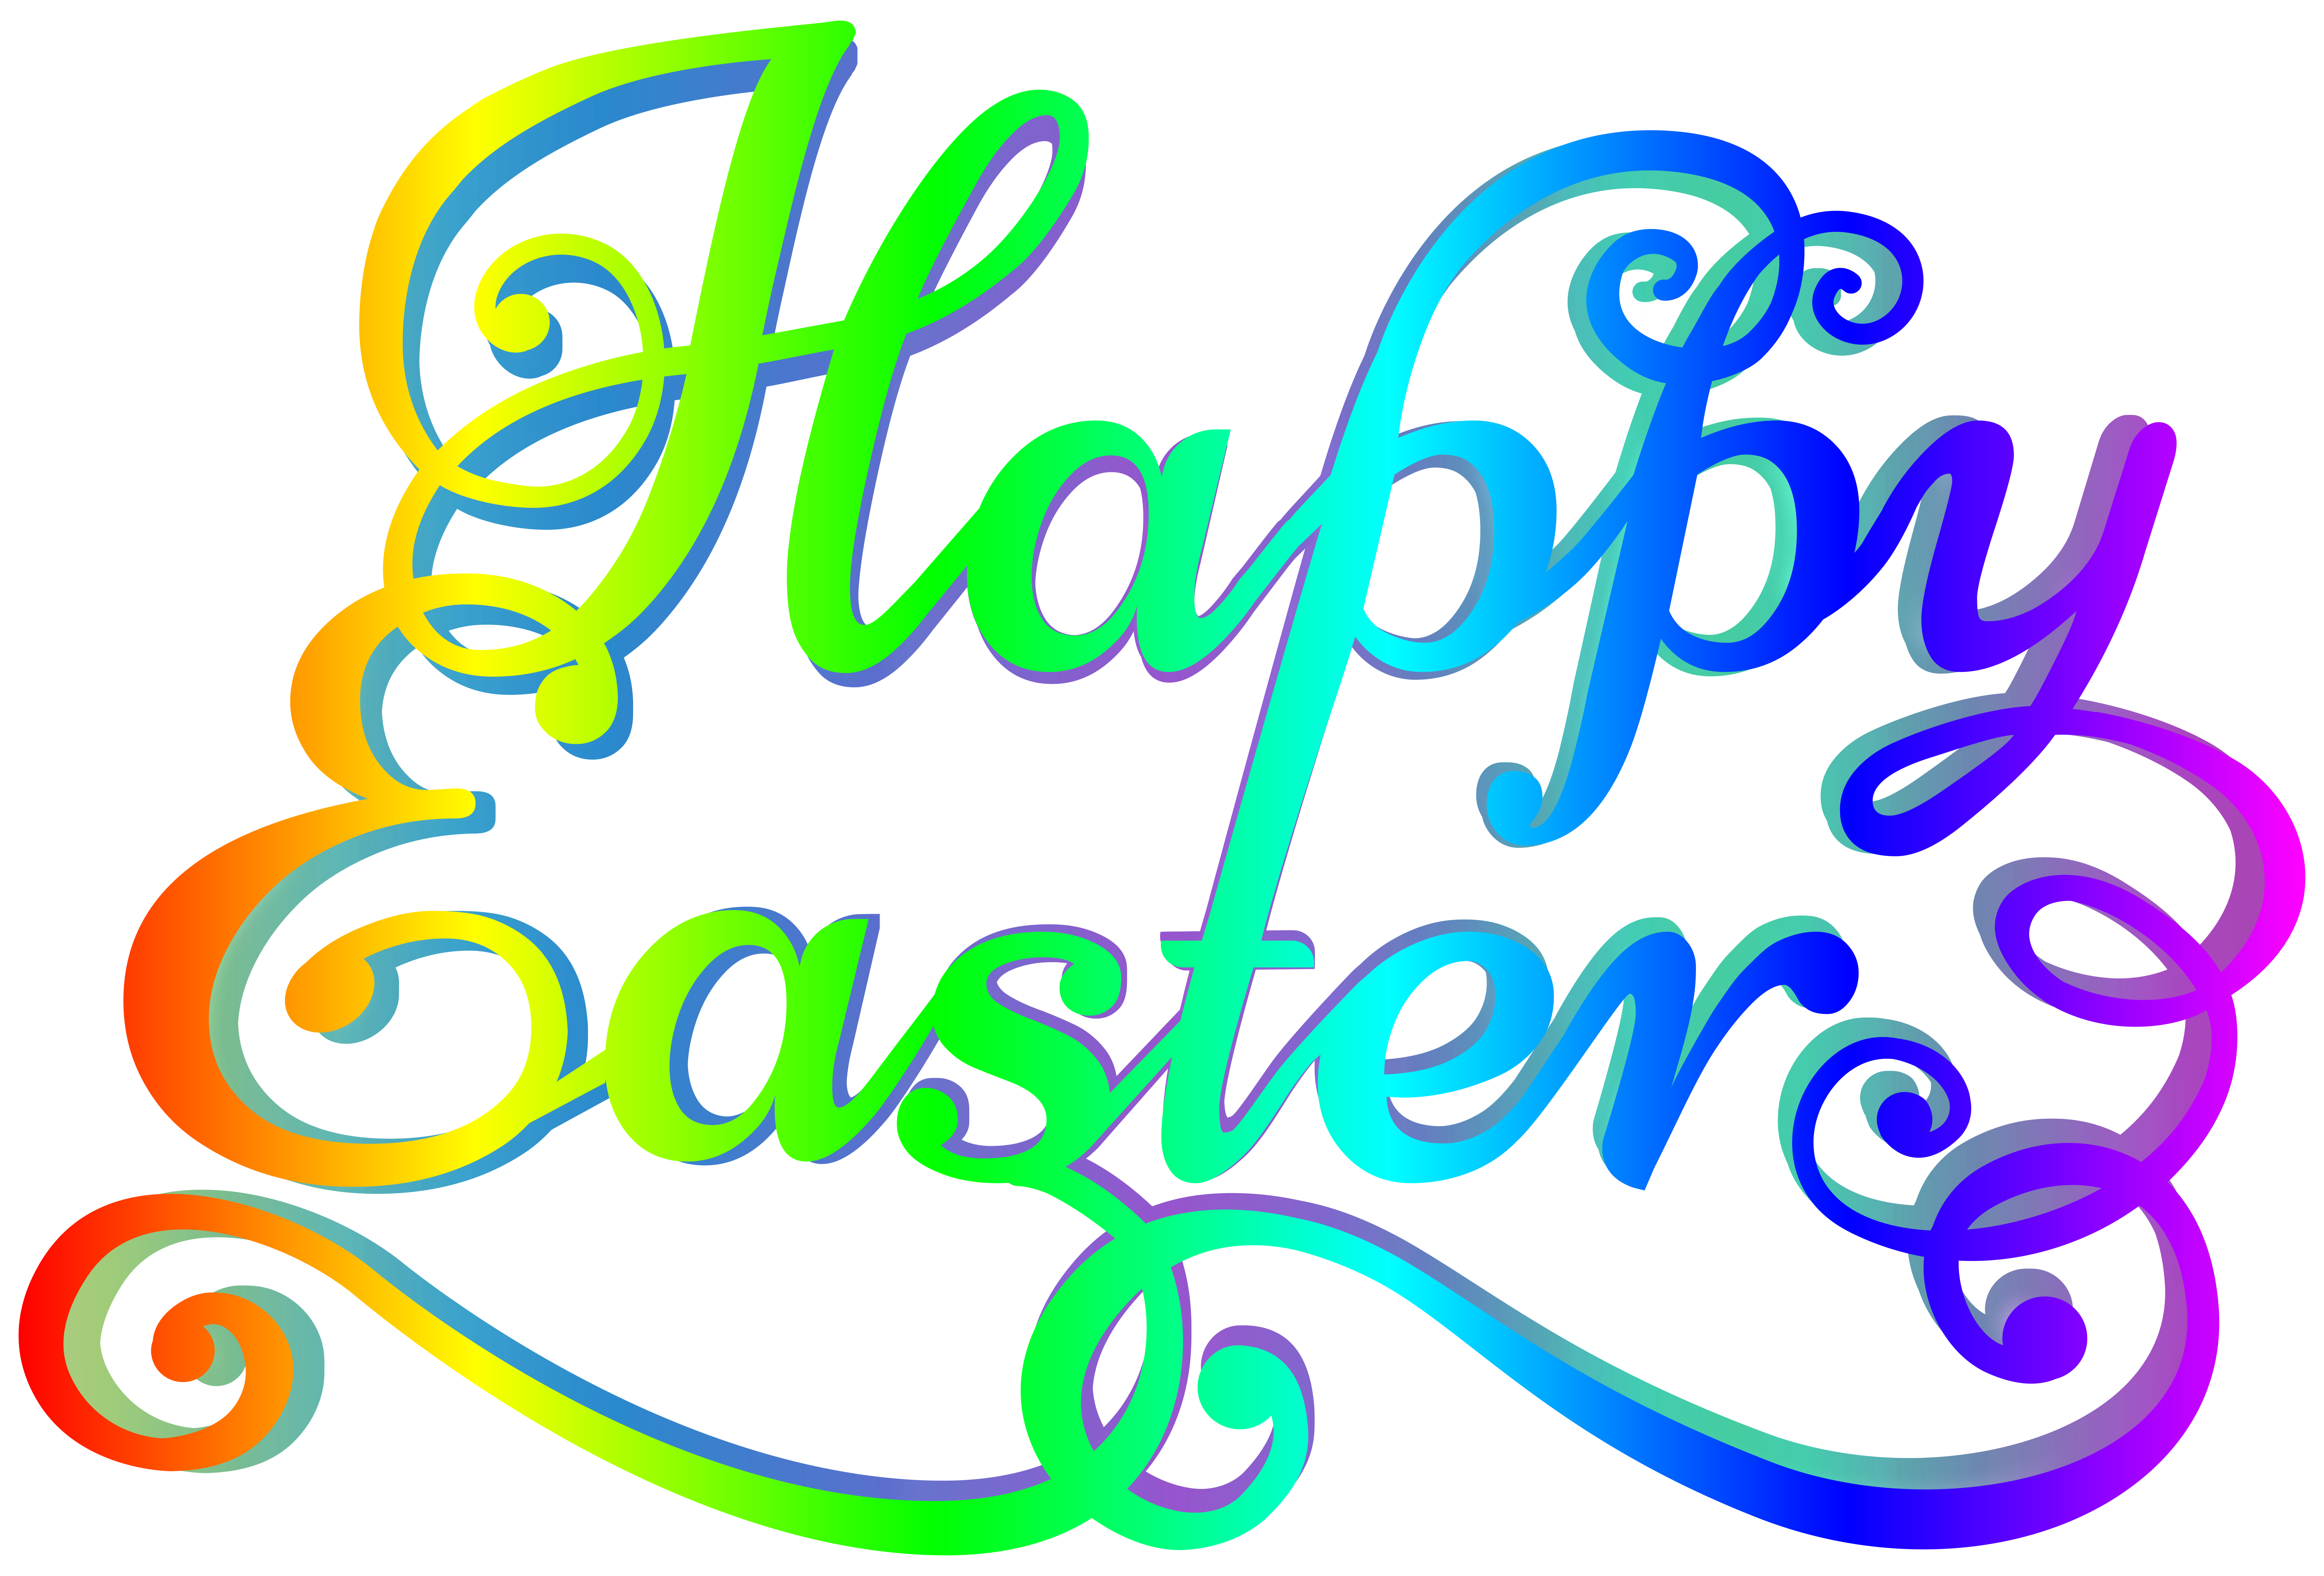 Happy easter transparent png. Rainbow clip art image